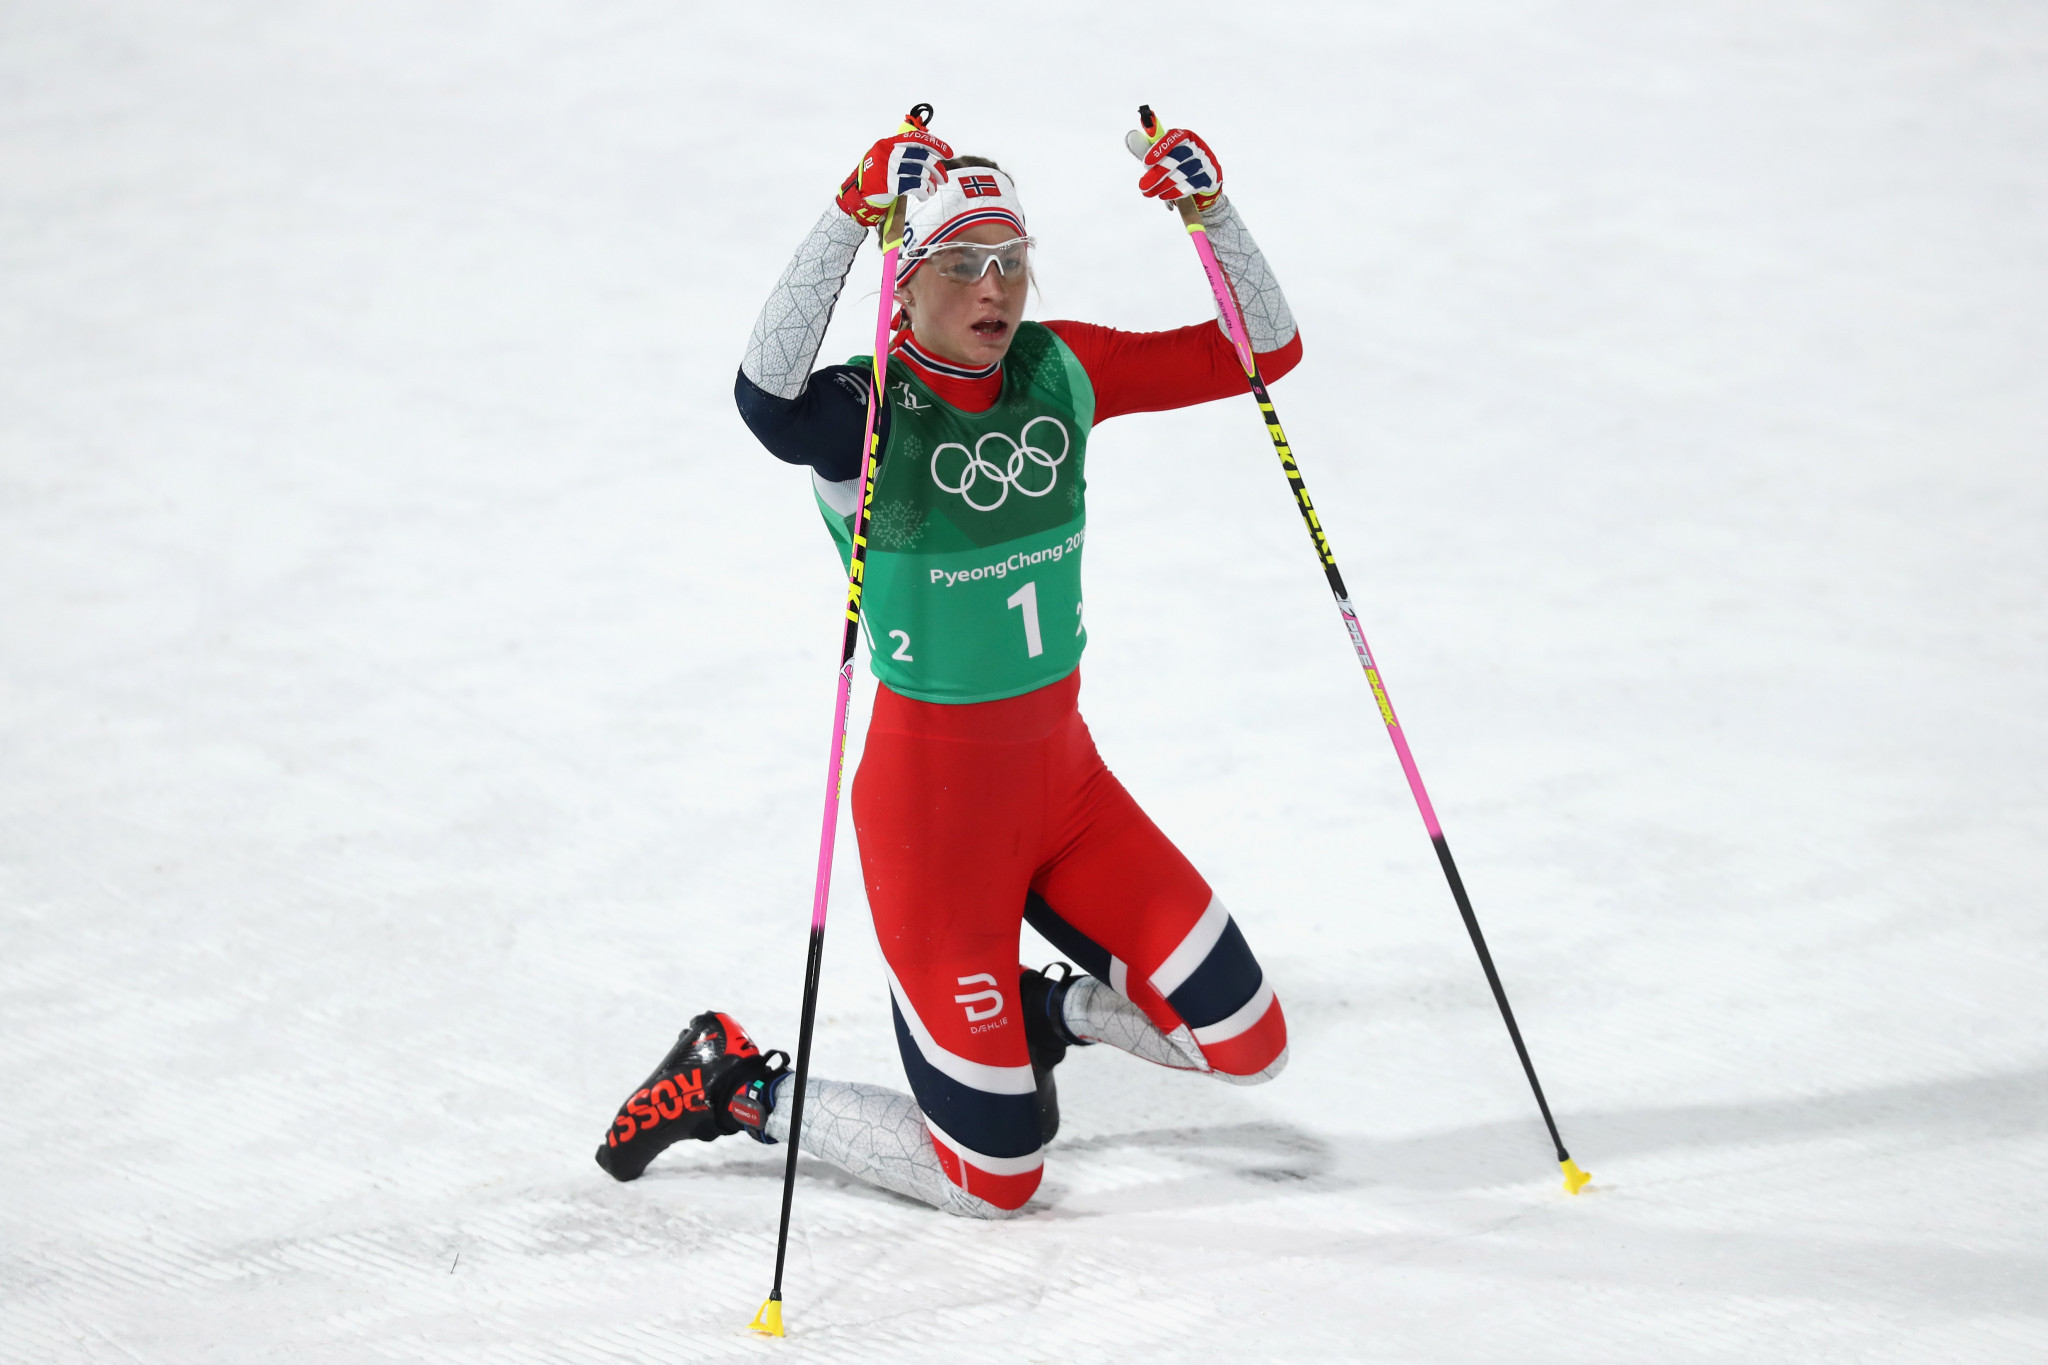 Astrid Uhrenholdt Jacobsen earned a gold medal in the team relay at the Pyeongchang 2018 Winter Olympic Games ©Getty Images